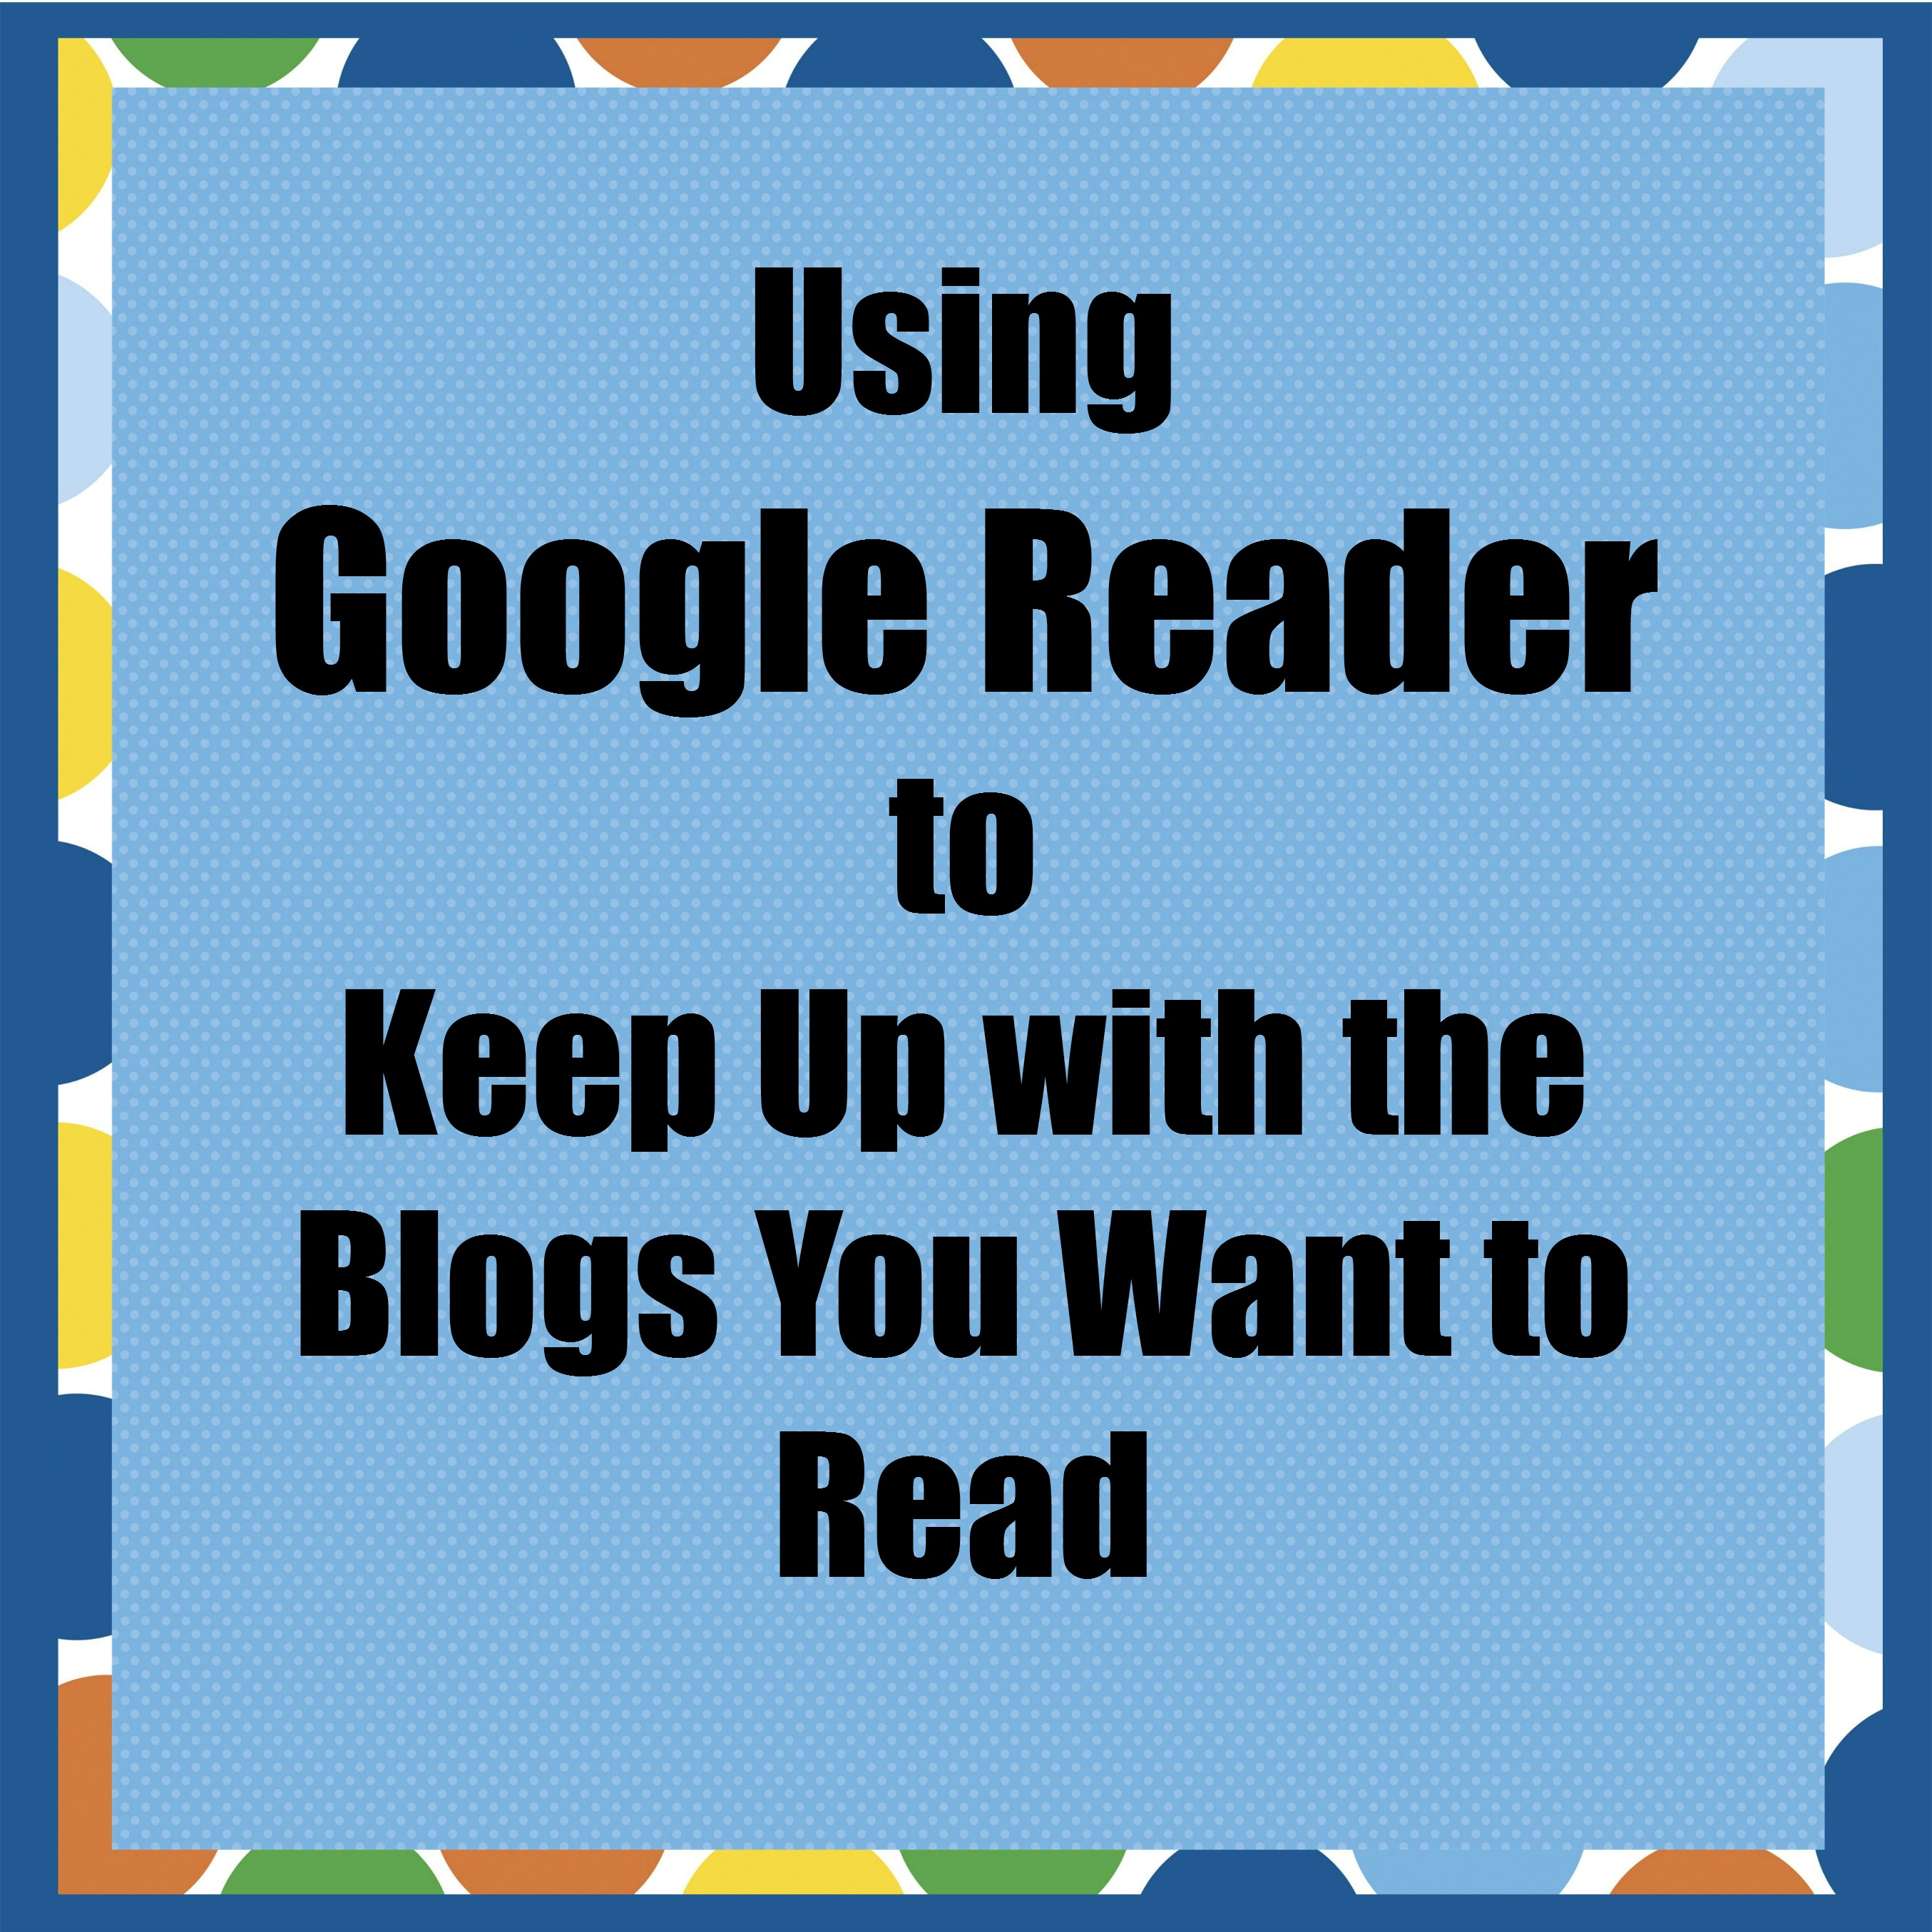 Using Google Reader to Keep Up with the Blogs You Want to Read